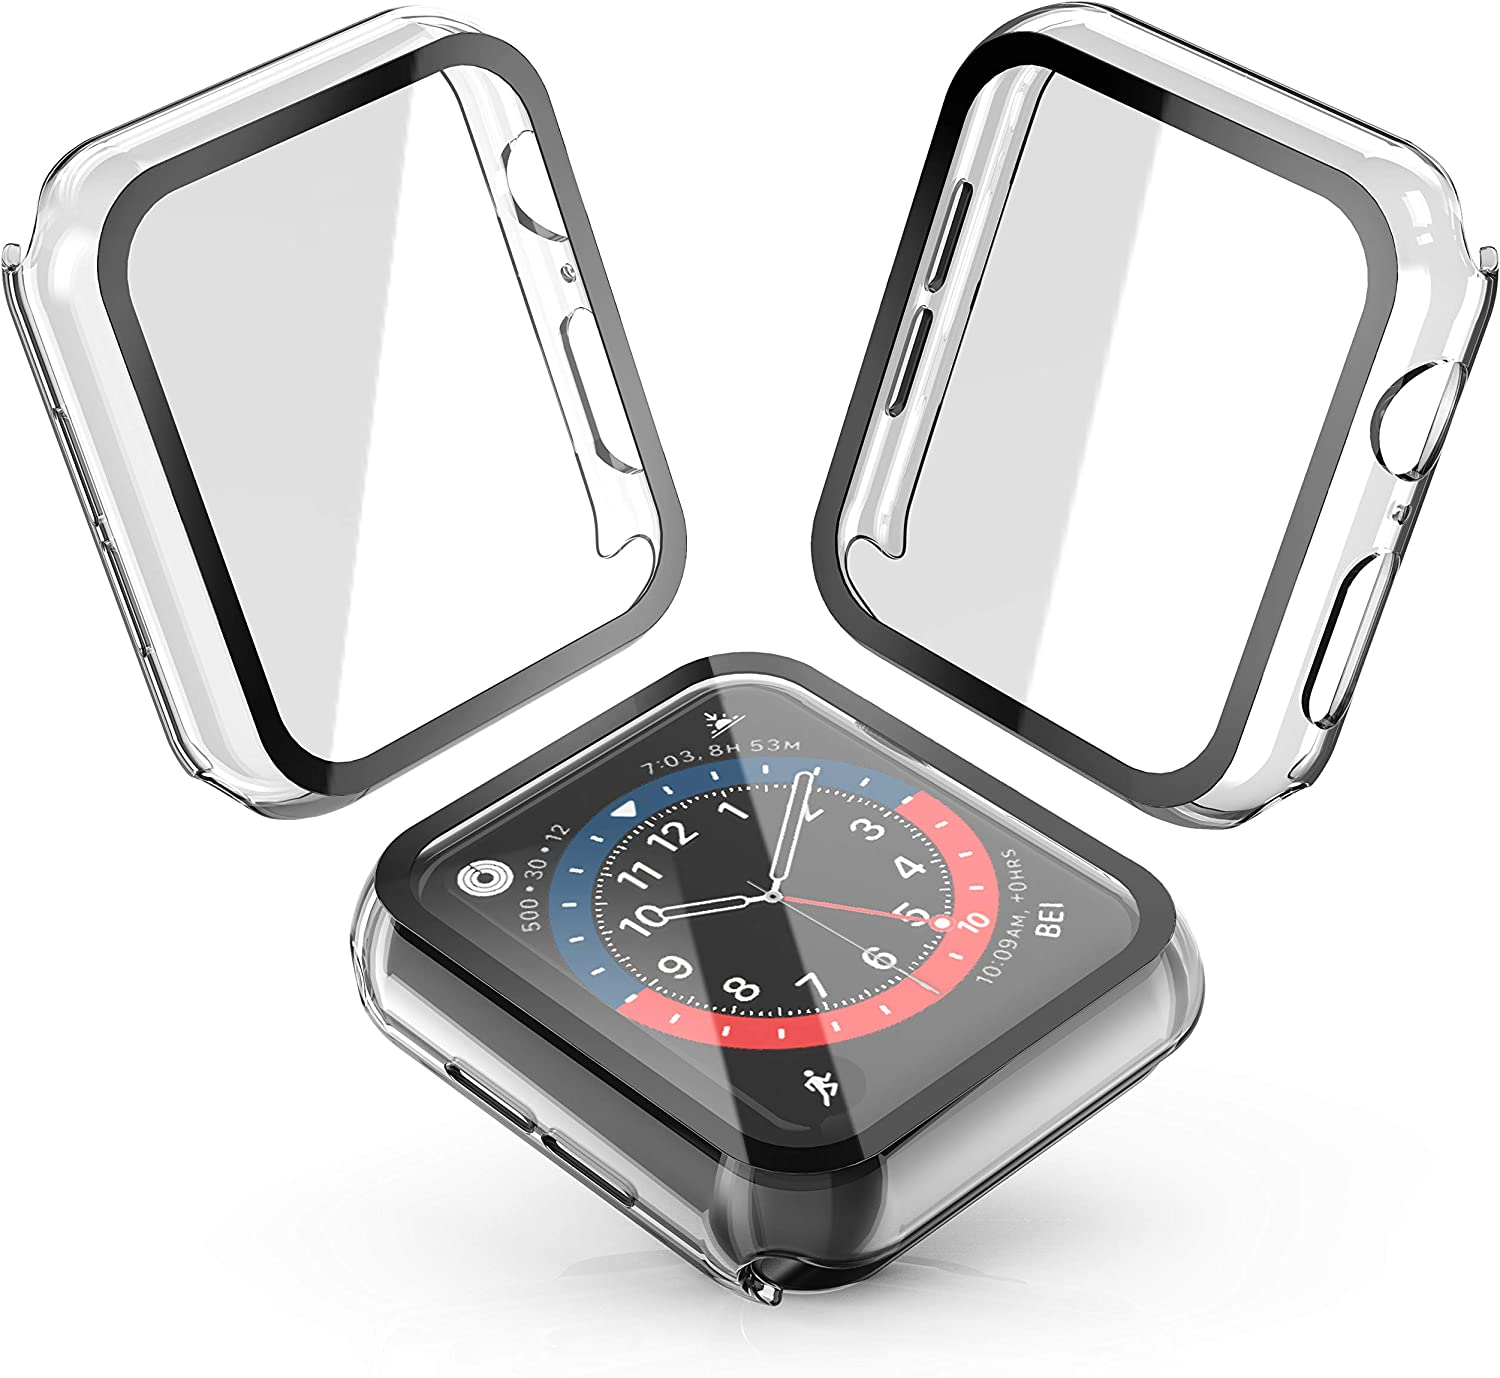 Julk Hard Case for Apple Watch Series 6 / SE/Series 5 / Series 4 44mm, 2020 New iWatch PC Overall Protective Cover with Slim Tempered Glass Screen Protector (2-Pack Transparent)